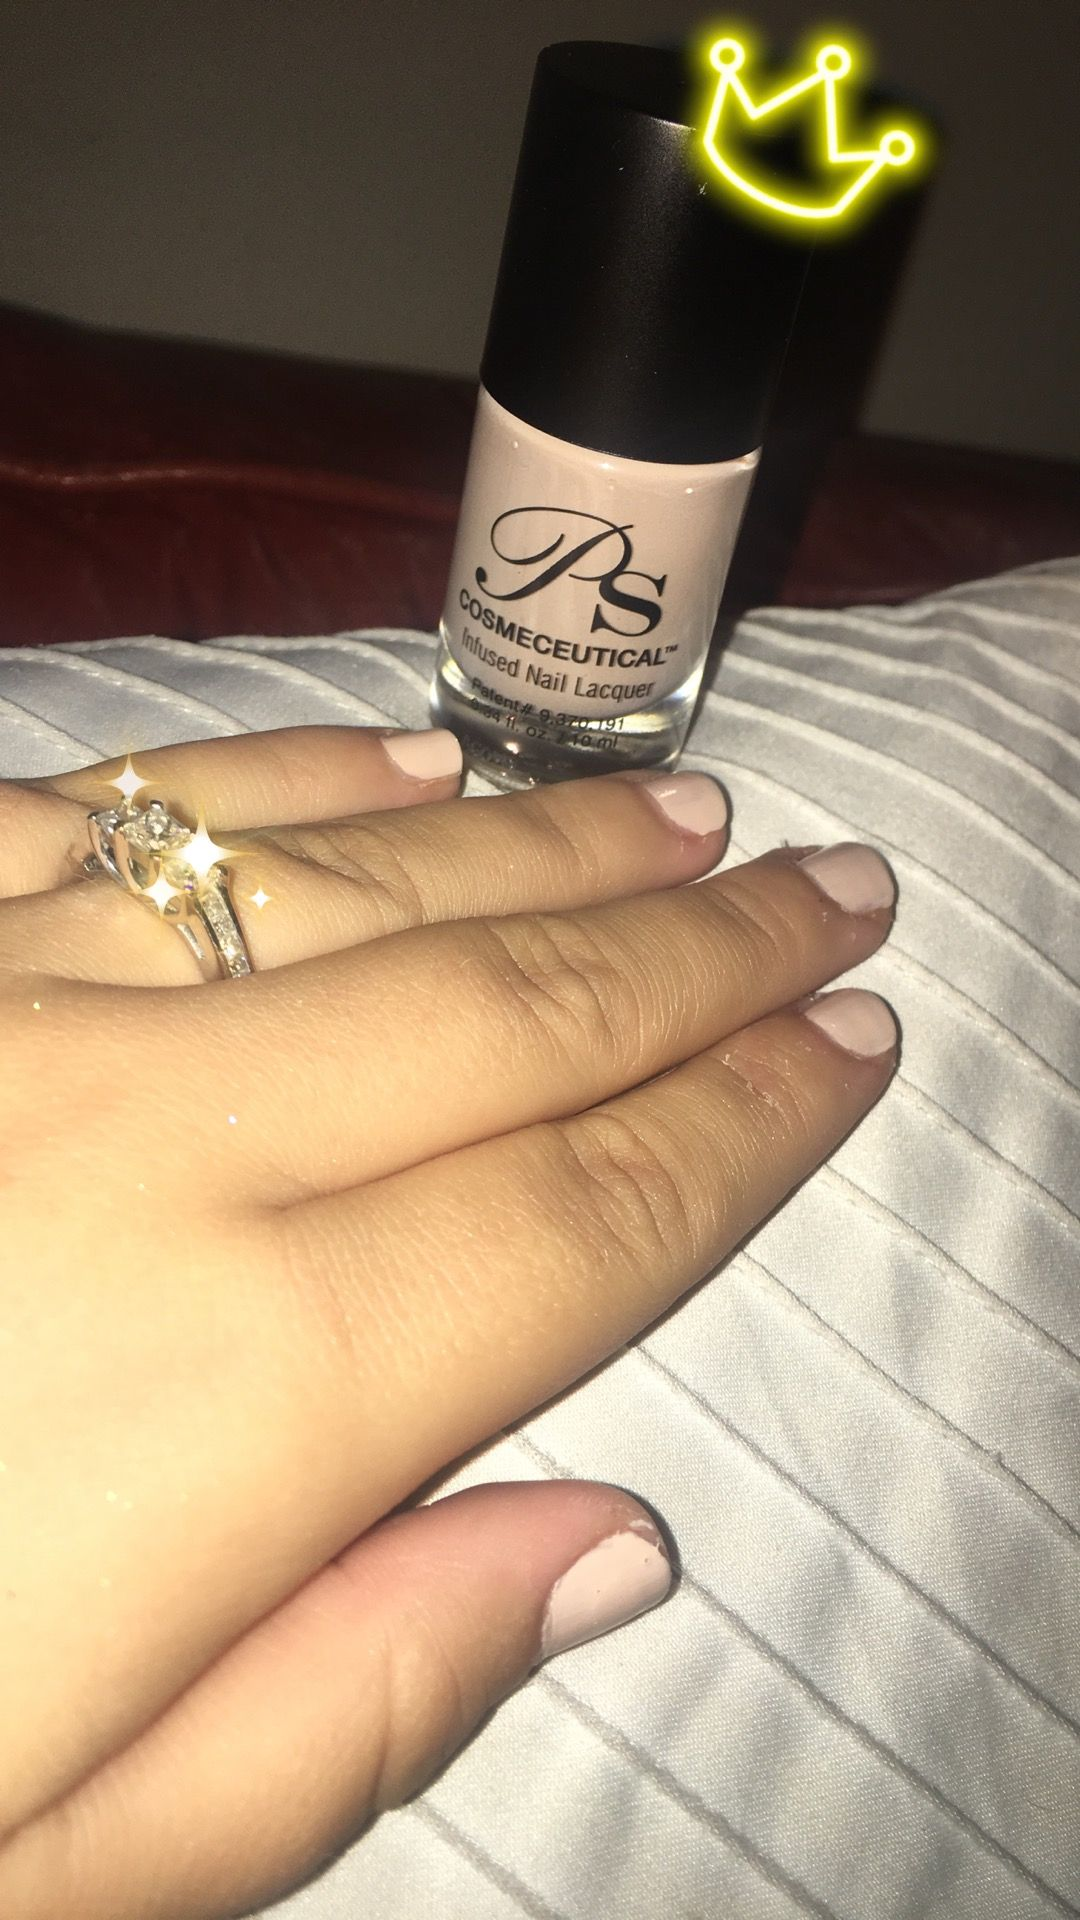 New favorite nude nail polish Ps Cosmeceutical infused nail lacquer ...